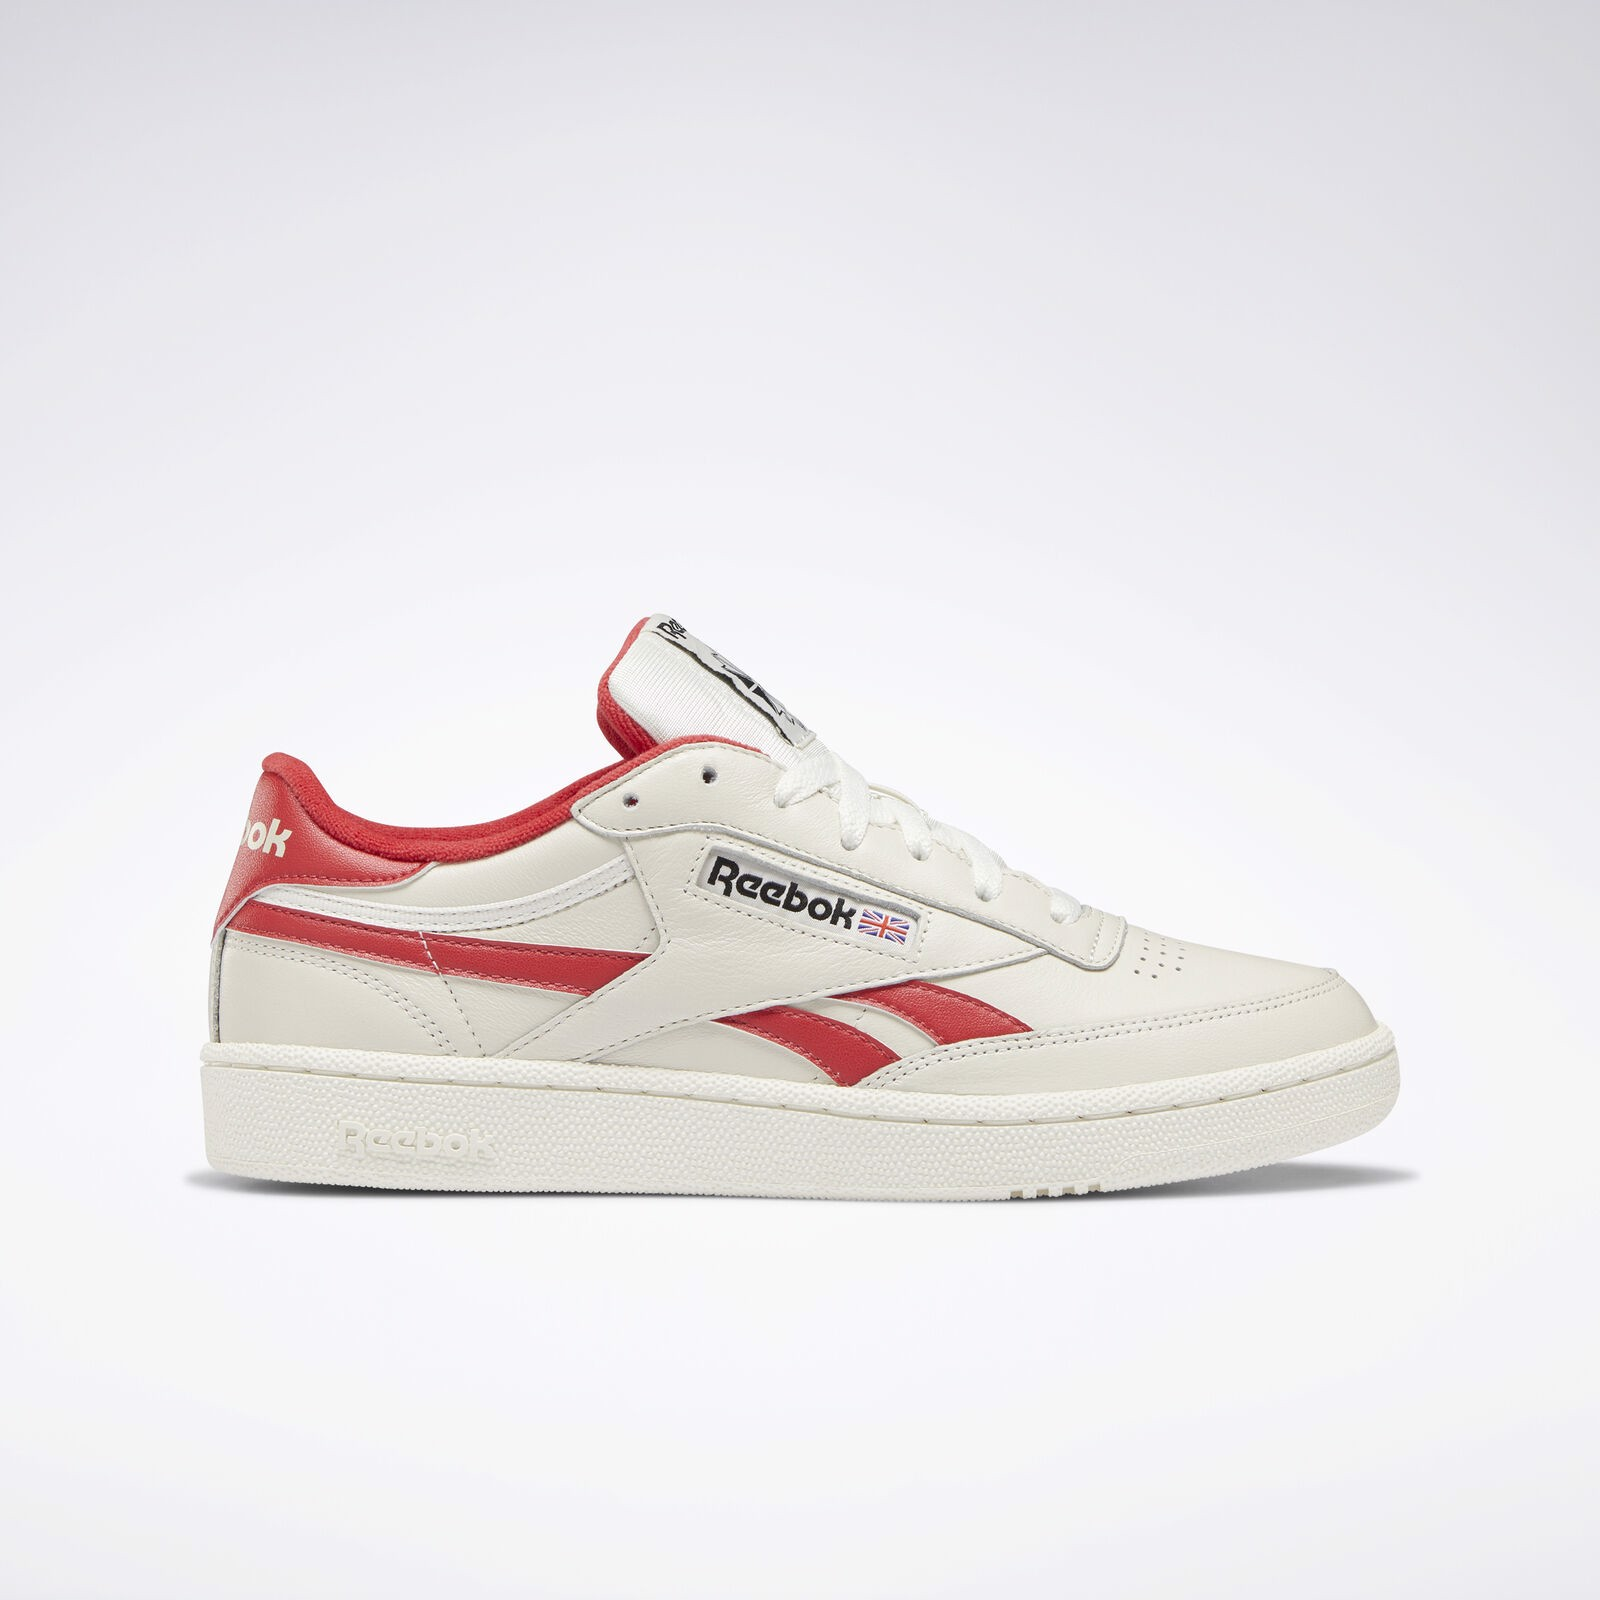 Reebok Men's Club C Revenge Plus Shoes